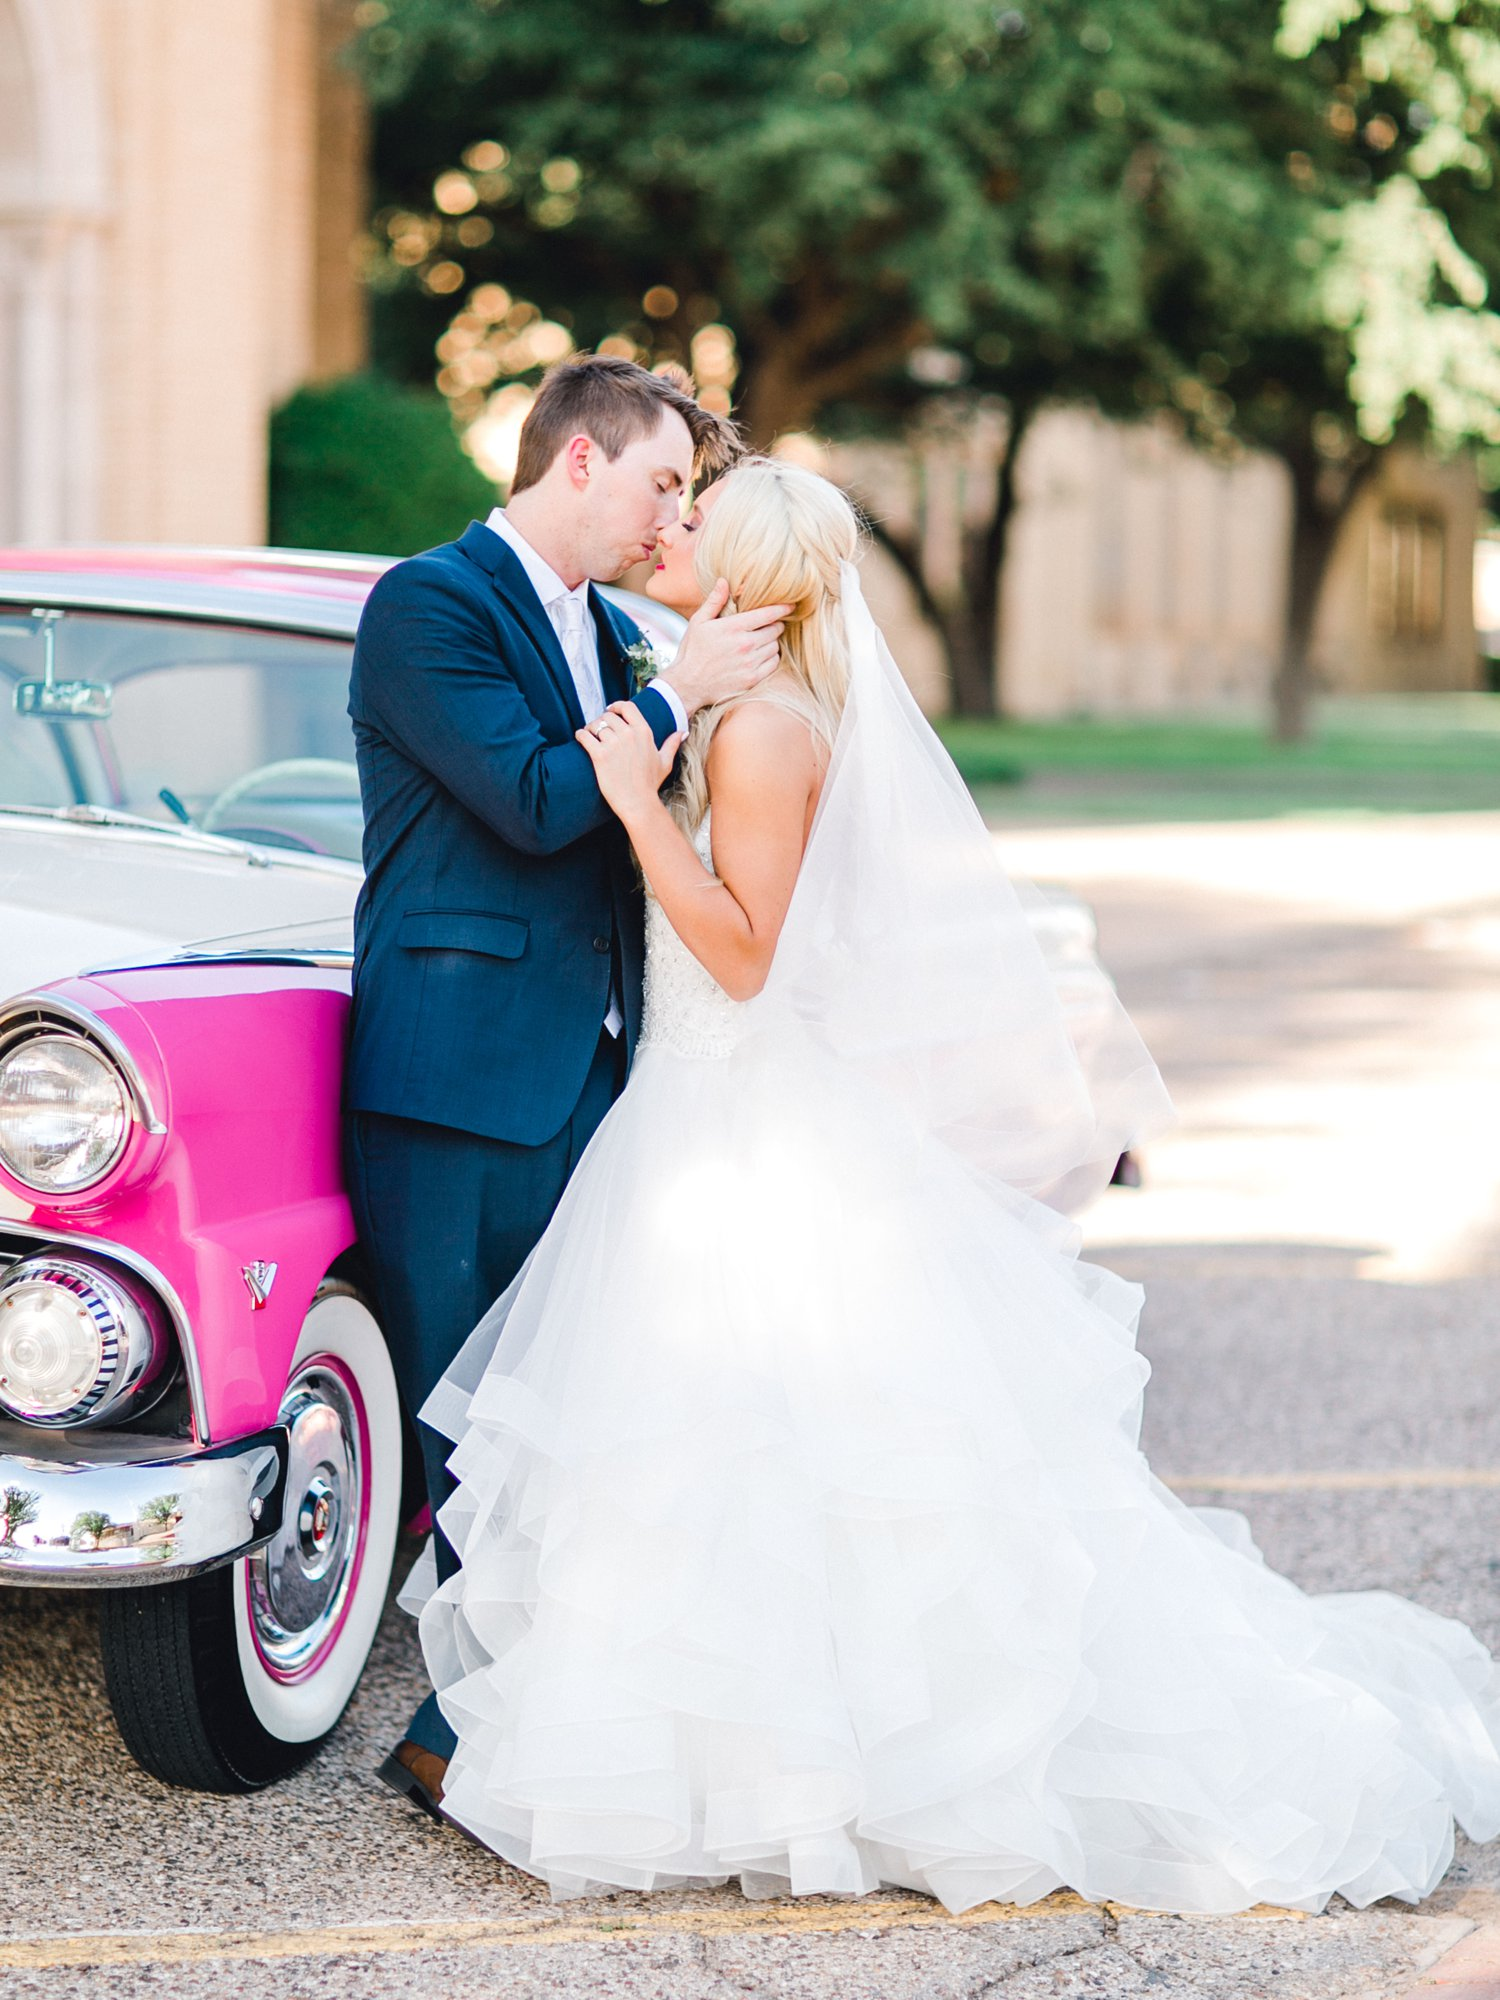 MADI_AND_WILL_STEPHENS_ALLEEJ_LUBBOCK_PHOTOGRAPHER_TEXAS+TECH+FRAZIER_ALUMNI0132.jpg